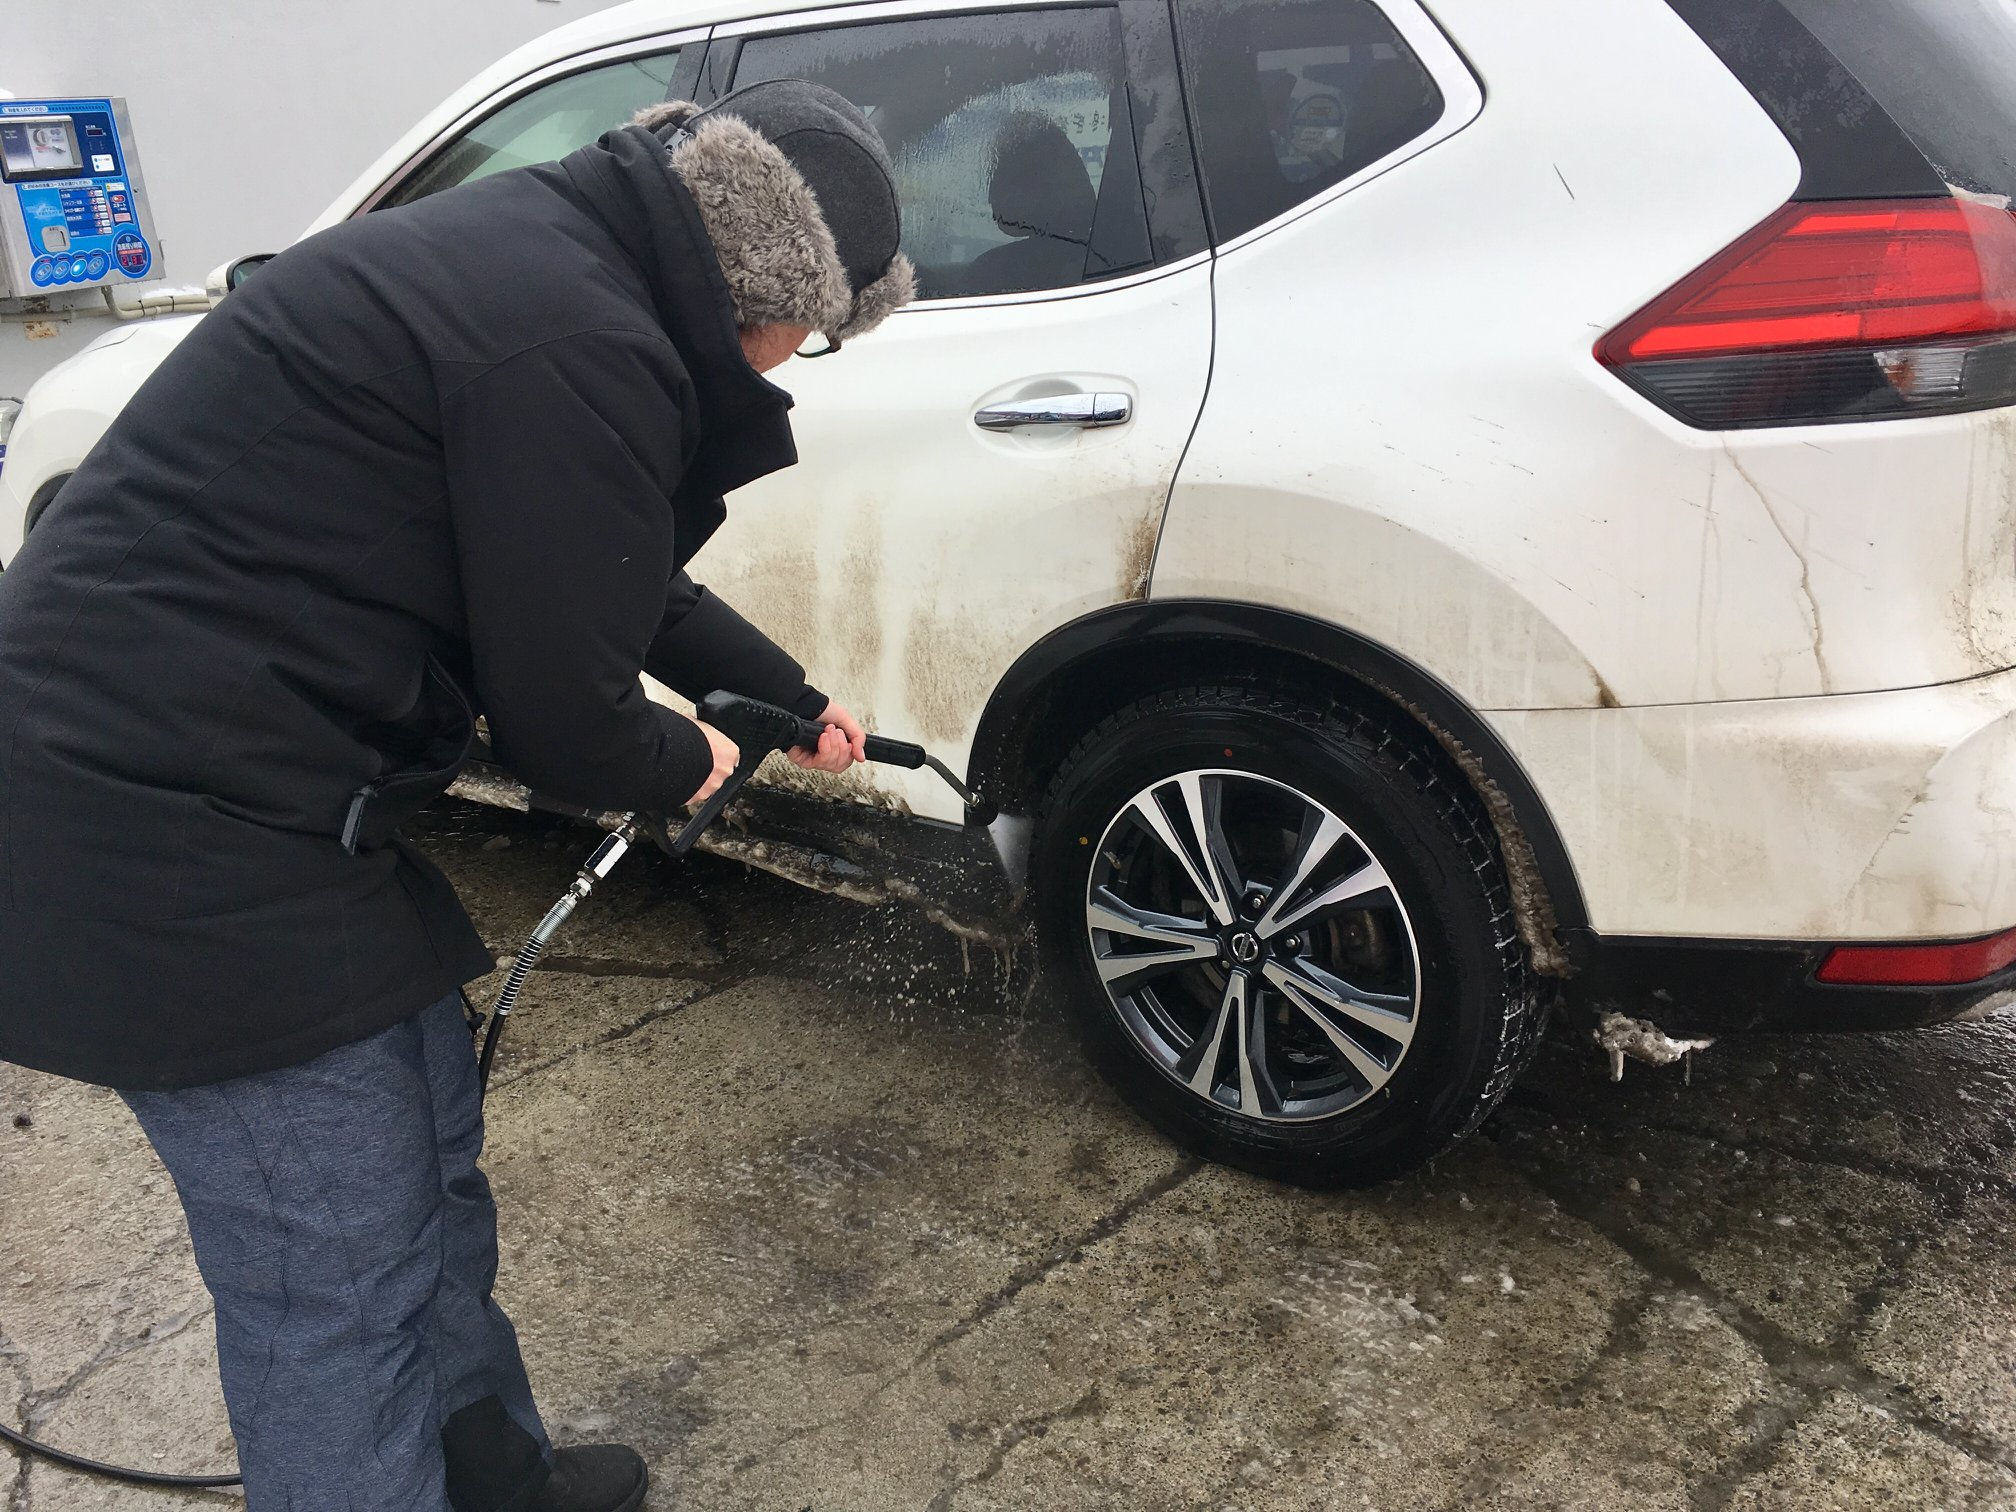 We used this car wash to try and clean out the huge chunks of ice that had formed in the wheel wells. There was so much ice it was only millimeters from the tires.  (photo: Ulana Switucha)